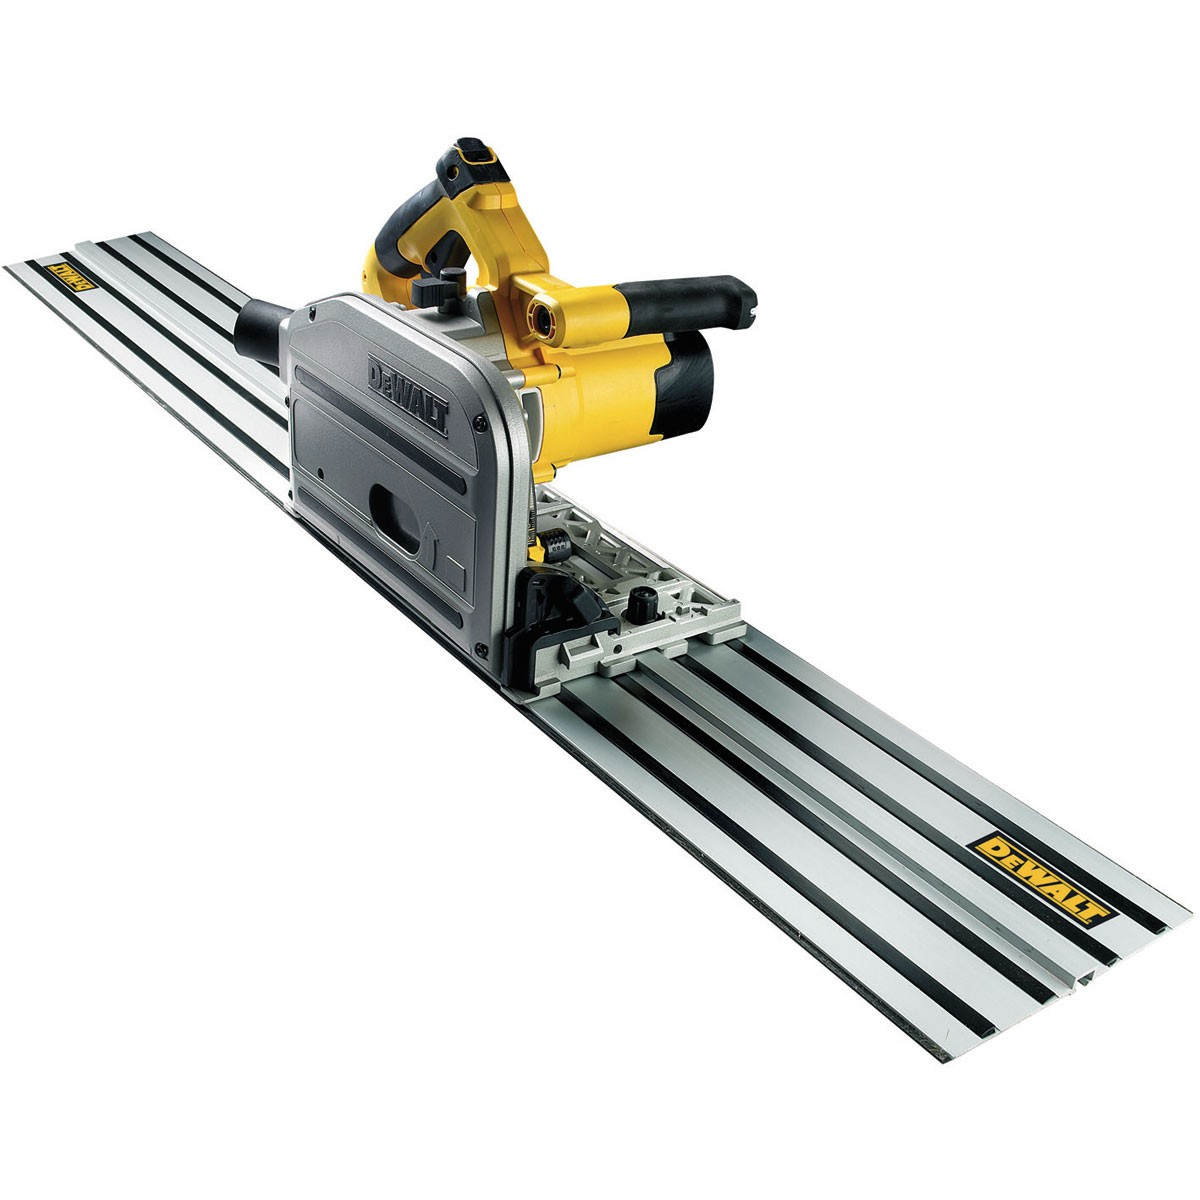 DeWalt DWS520KR Plunge Saw & Guide Rail 240v